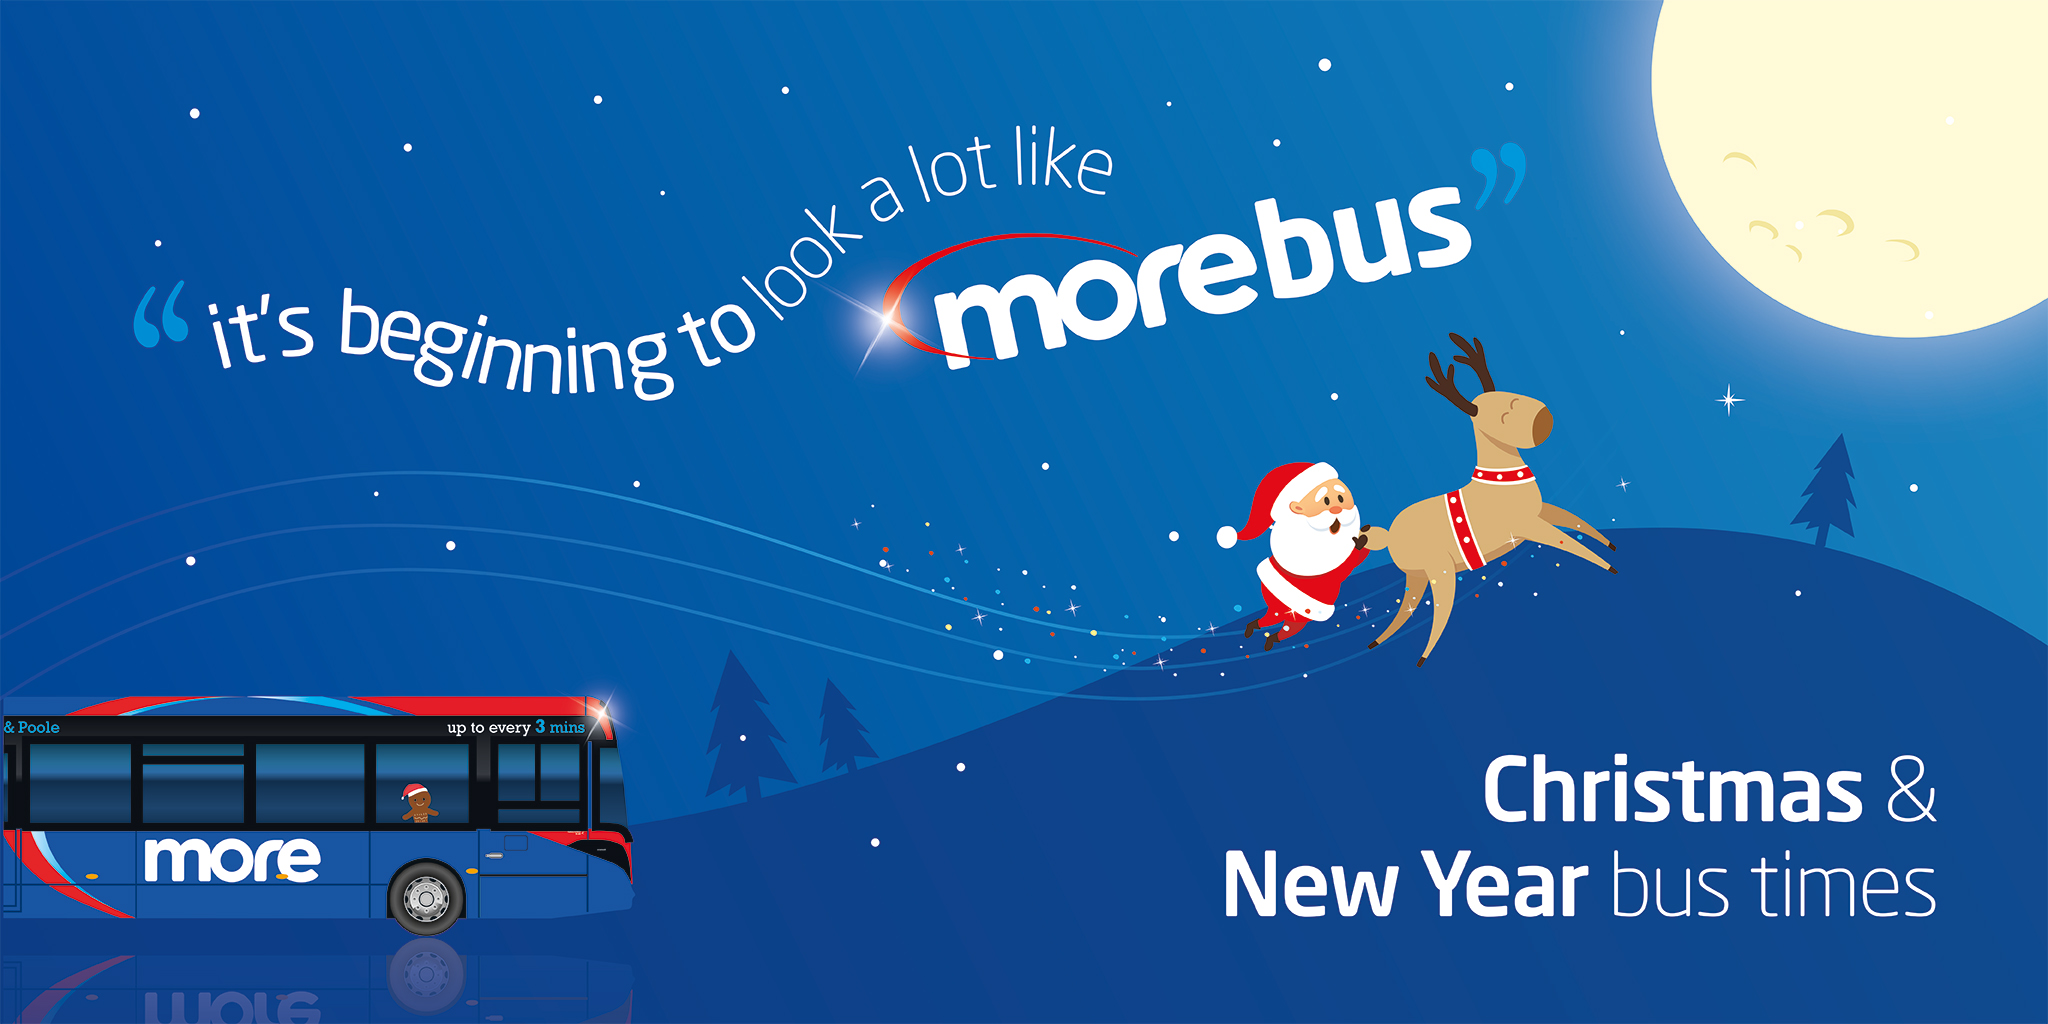 morebus Christmas & New Year bus times illustration